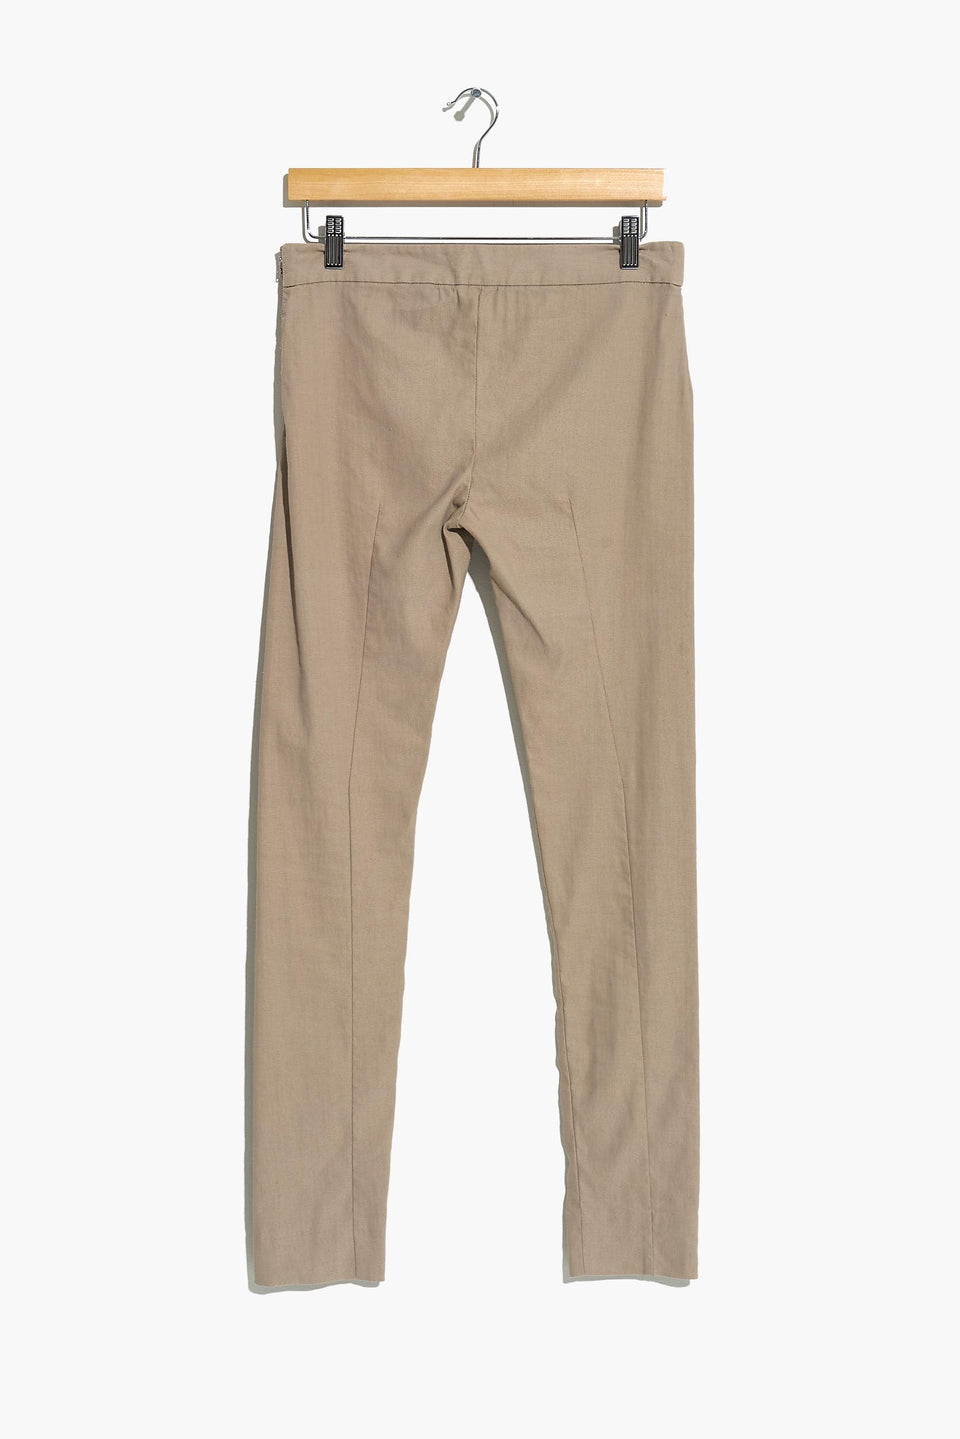 c ACNE Beige Trousers